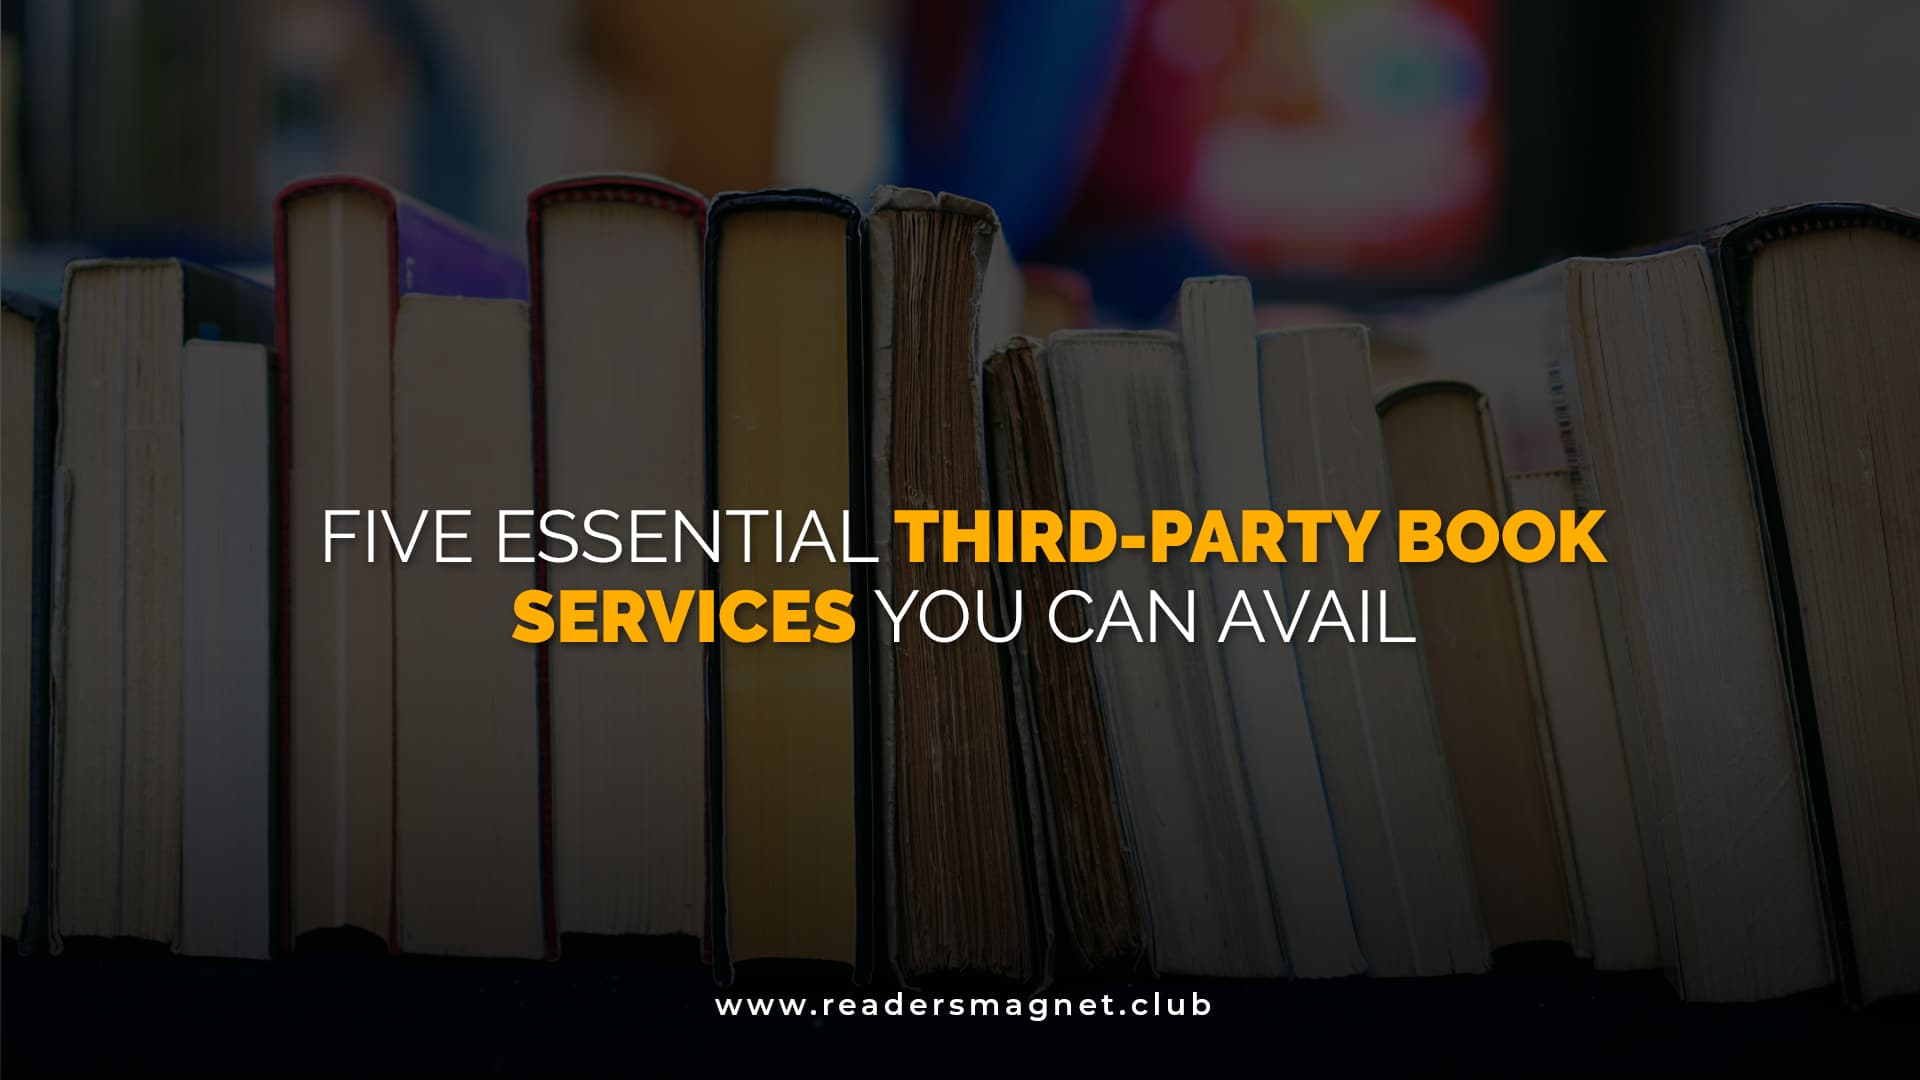 Five Essential Third-Party Book Services You Can Avail